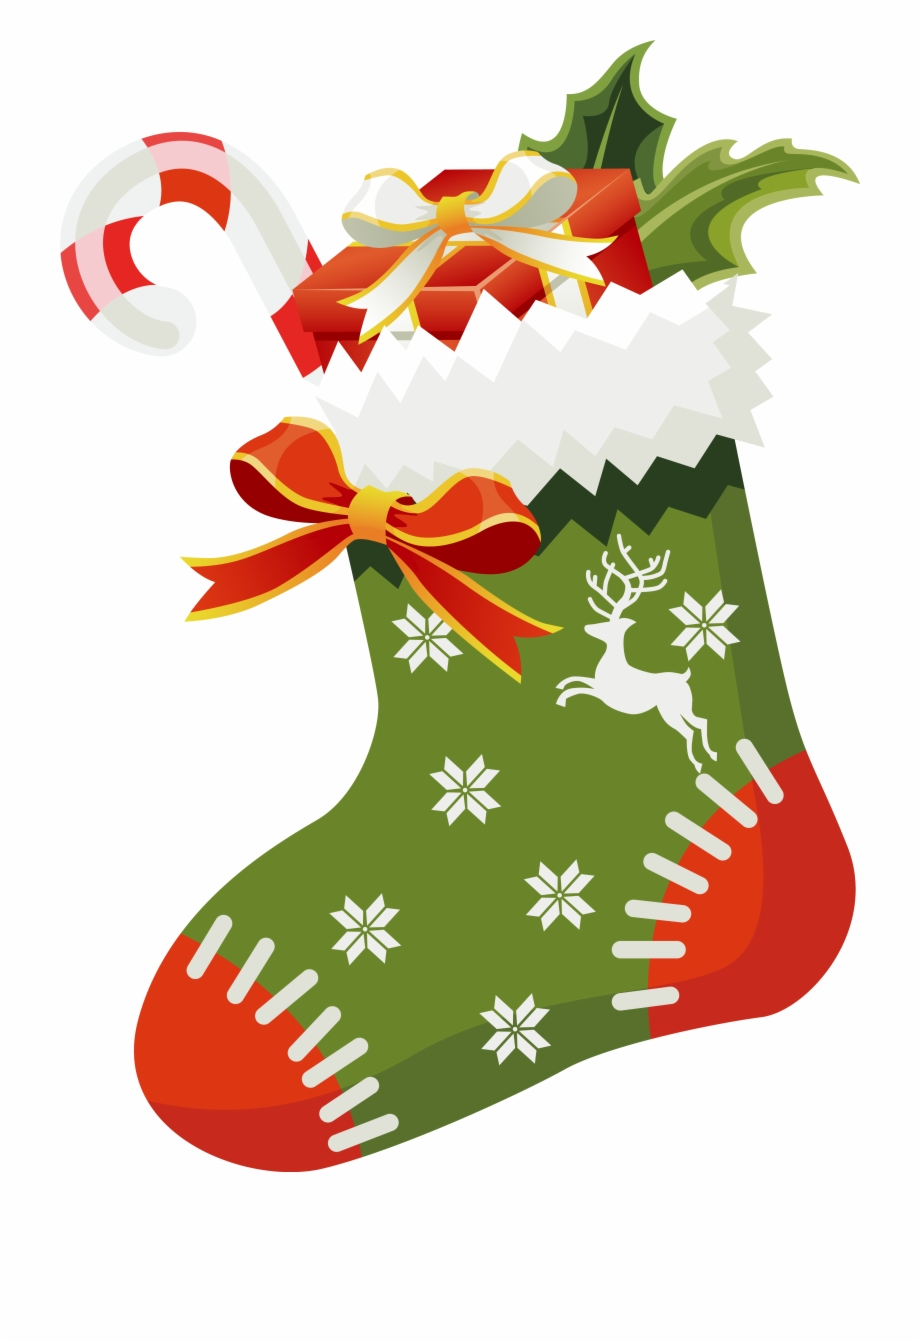 Christmas Crafts For Kids, Christmas Images, All Things.